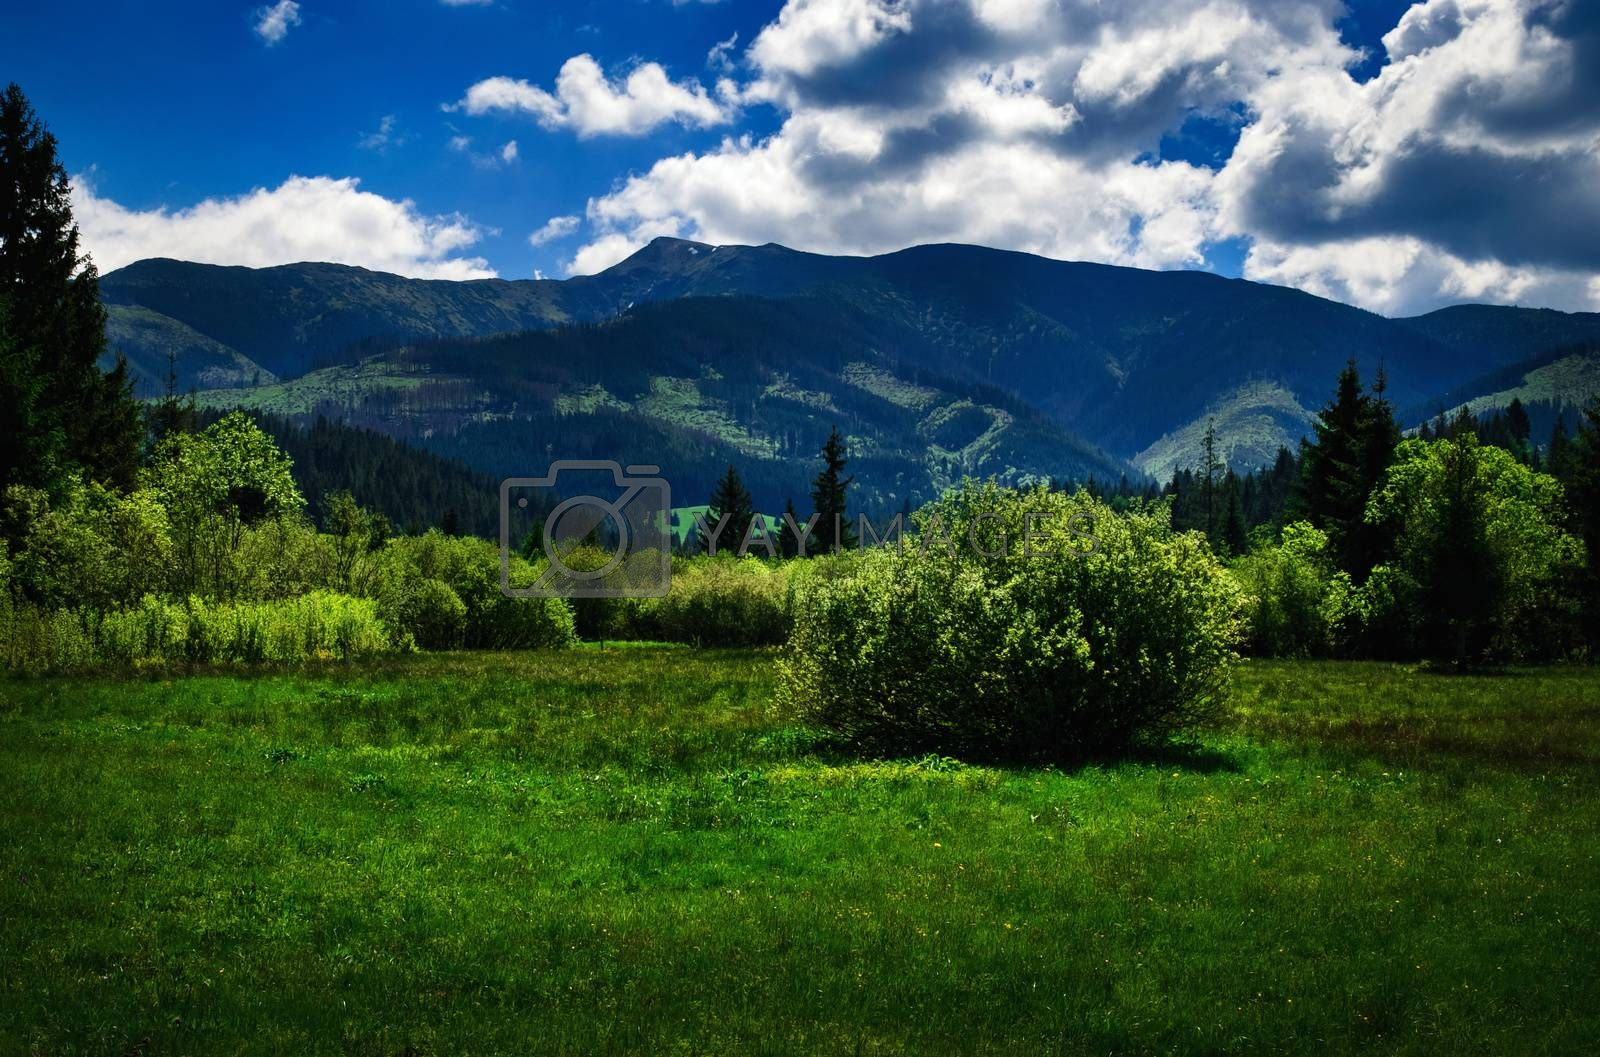 landscape nature background summer mountainous countryside with hills